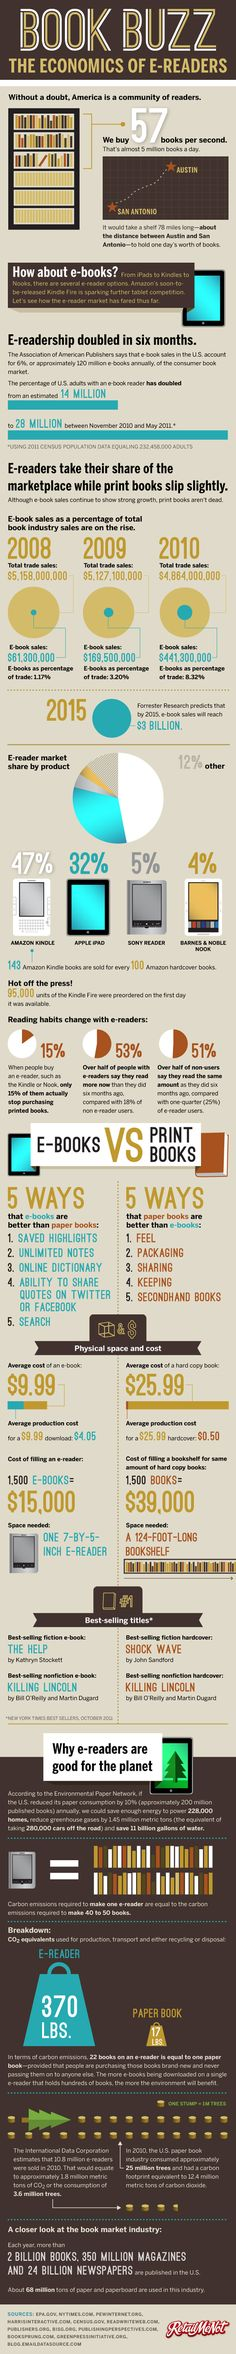 "Book buzz, ""The economics of e-readers"". ebook vs print books"